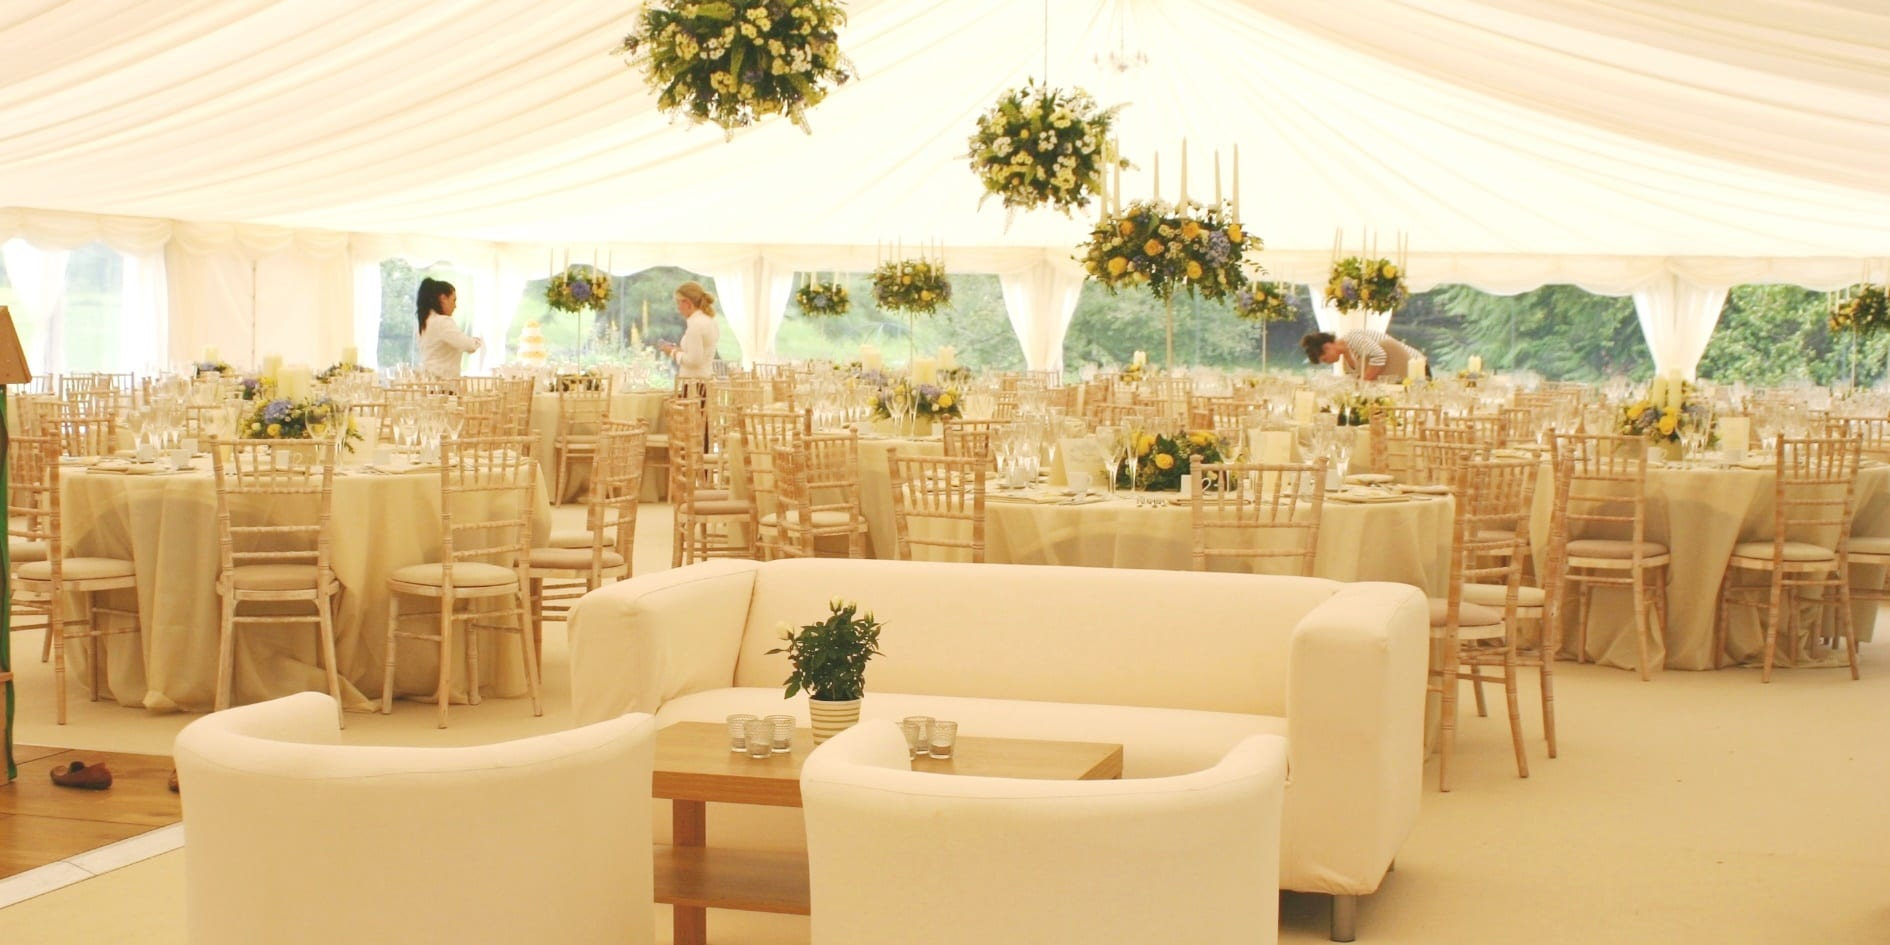 Decorating your wedding marquee hatch marquee hire for Ideas to decorate